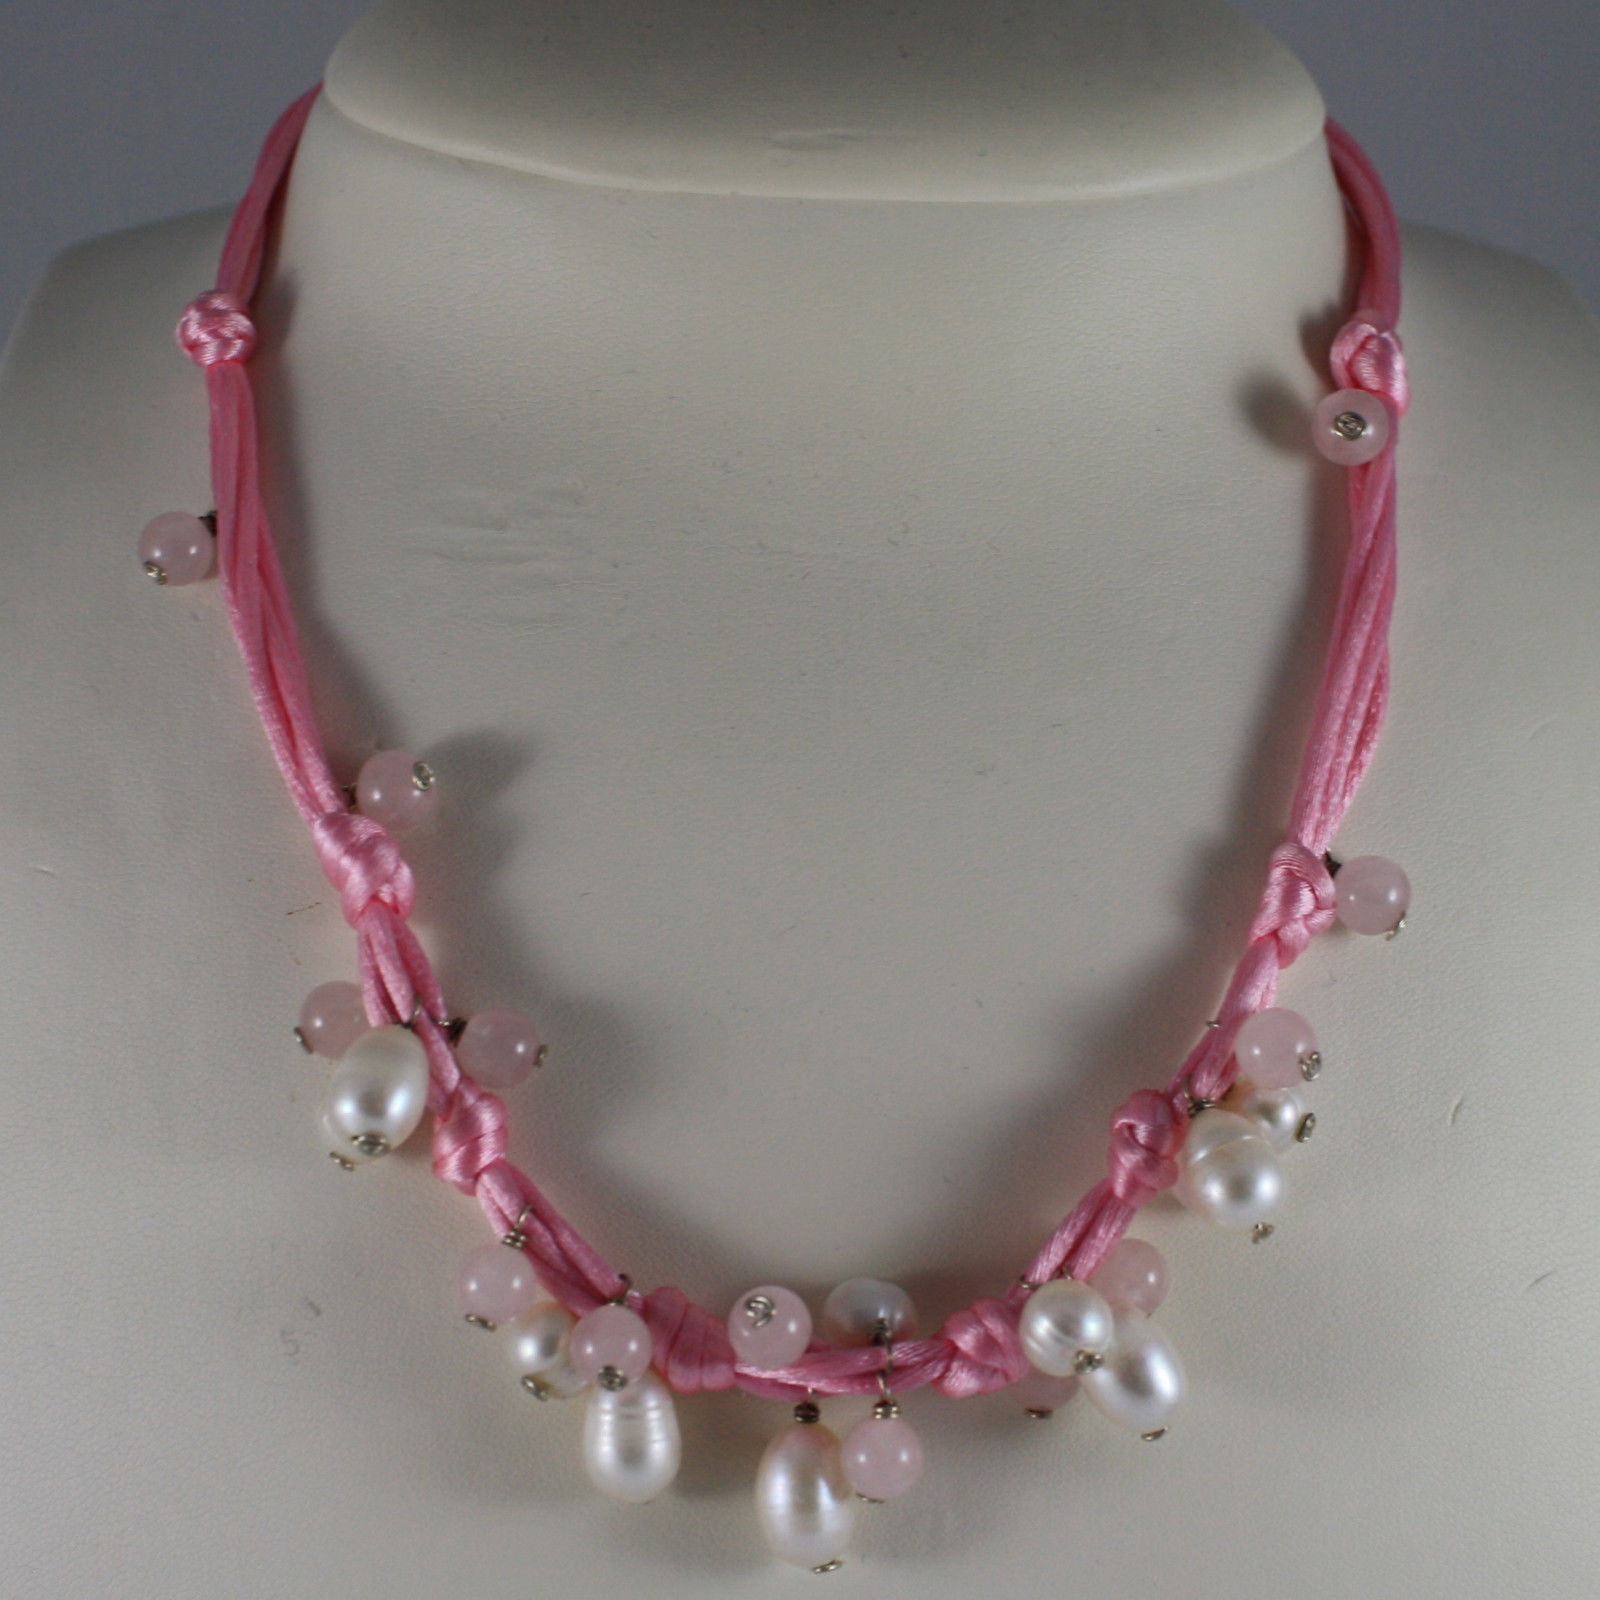 .925 SILVER RHODIUM NECKLACE WITH PINK CORD, WHITE PEARLS AND PINK QUARTZ